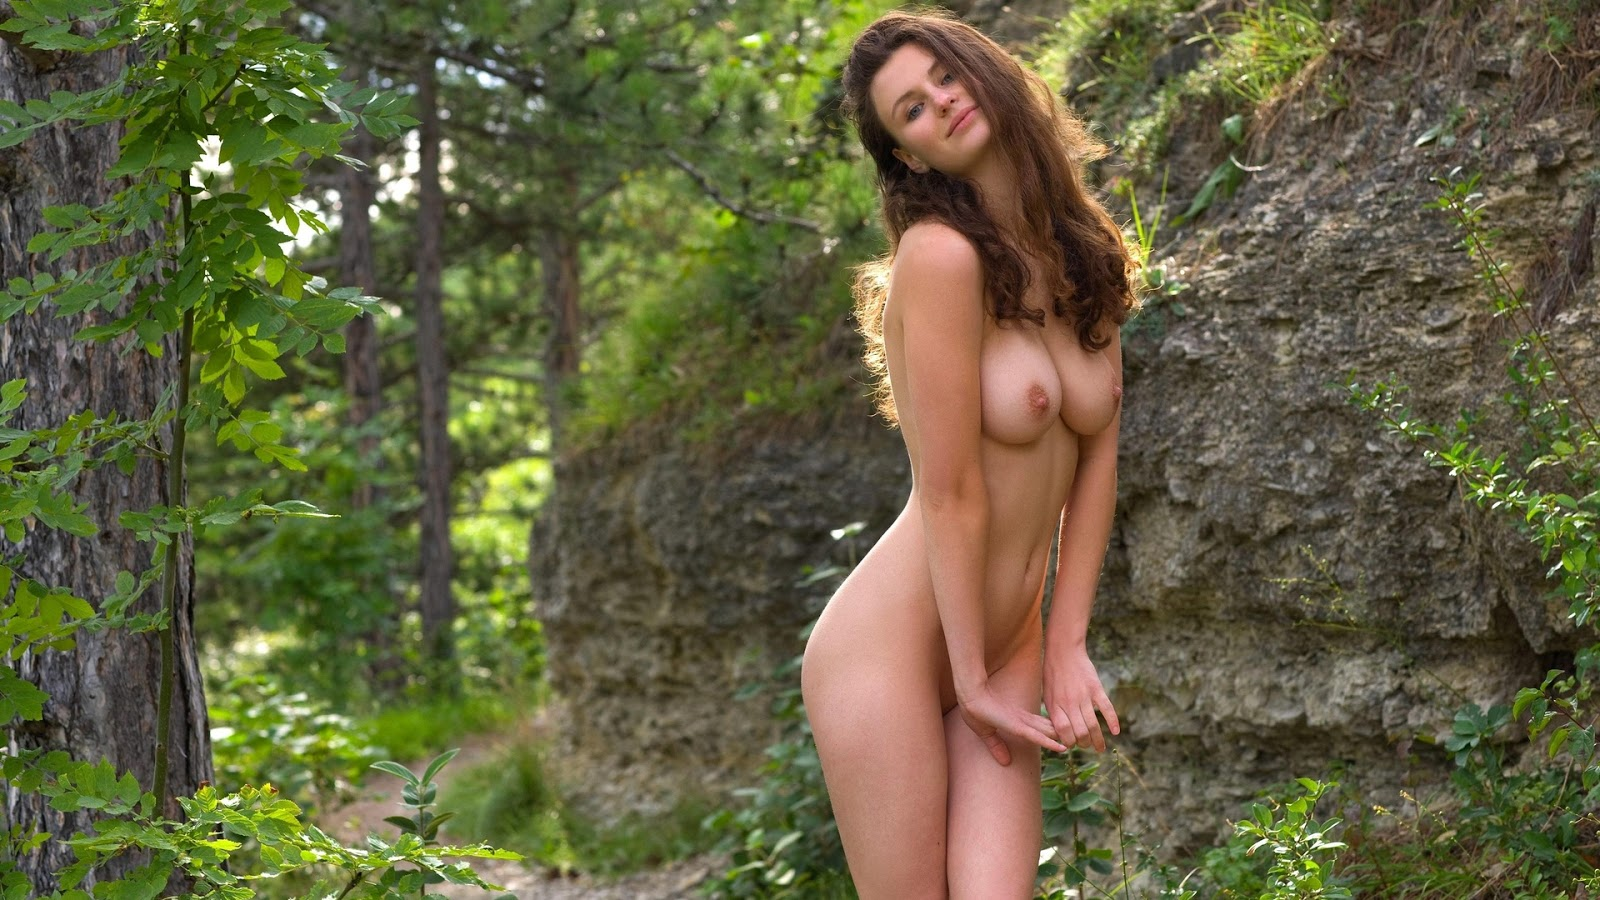 Jungle brazil nude girls